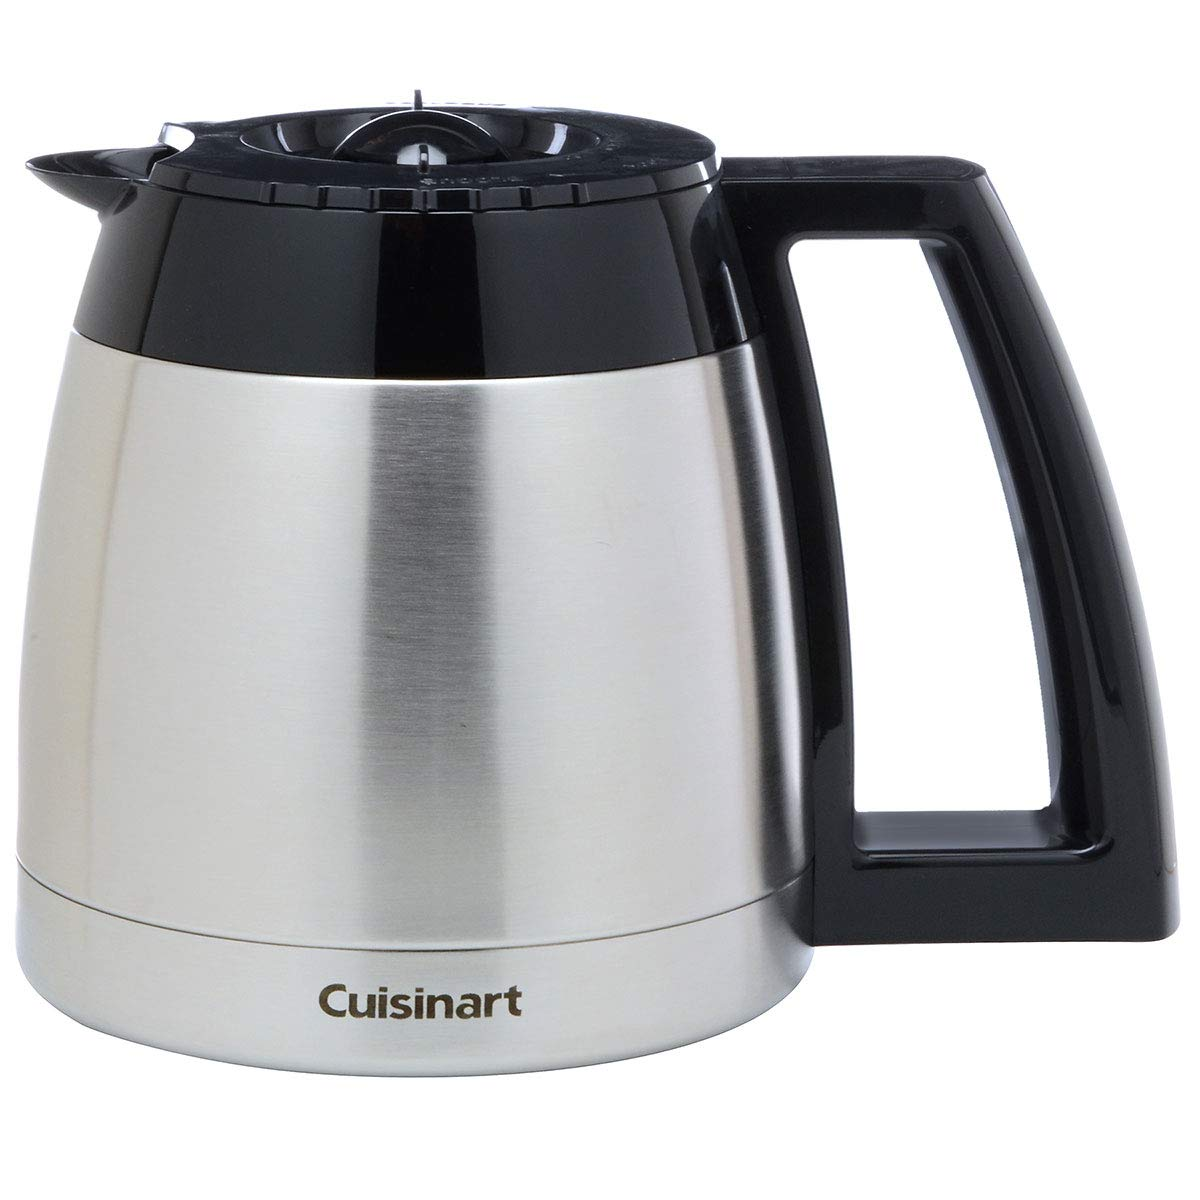 Cuisinart DGB-600RC 10 Cup Stainless Thermal Carafe with Lid, Chrome by Cuisinart